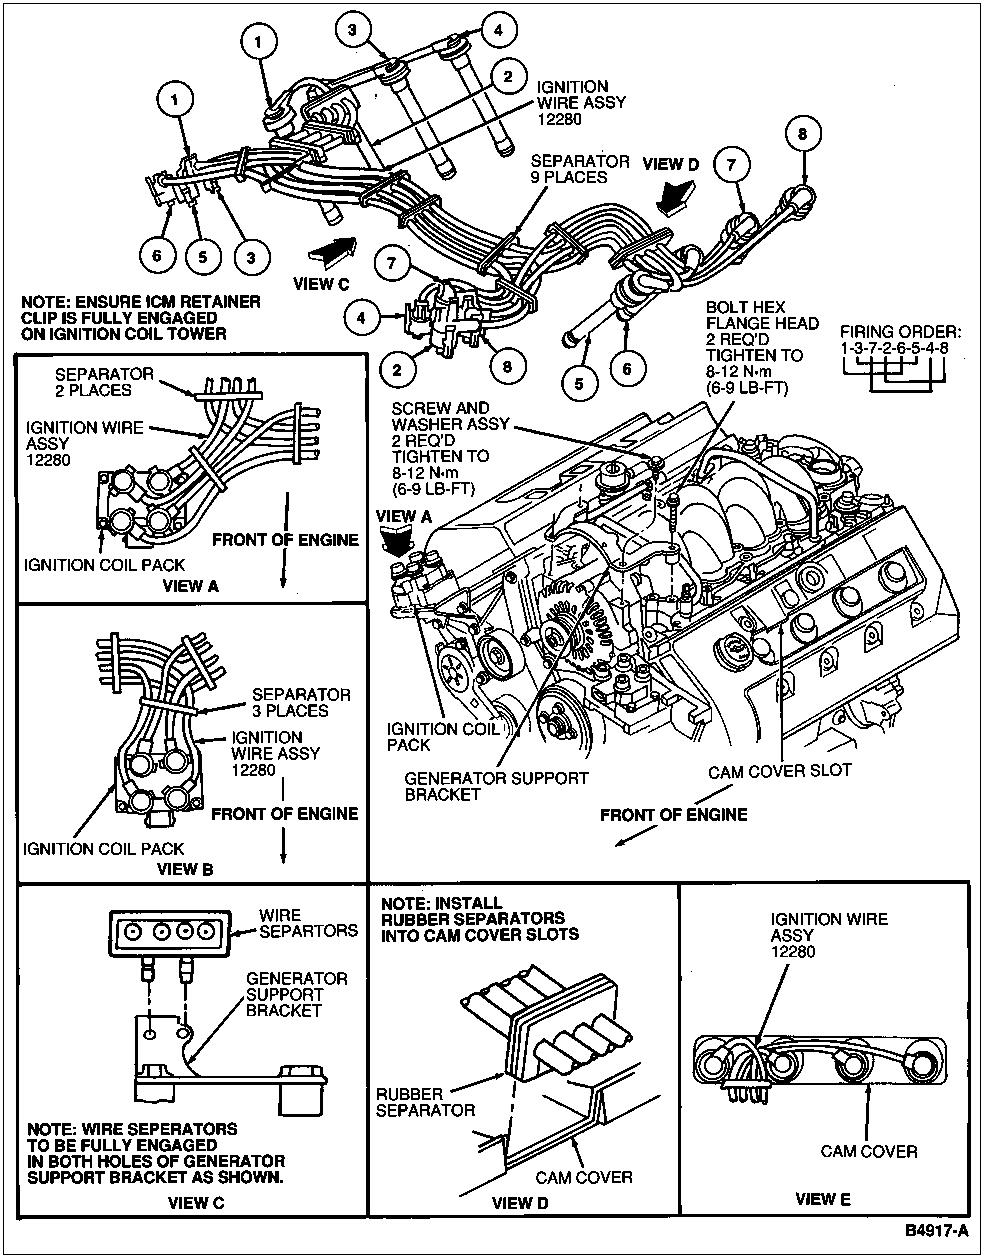 1998 lincoln mark viii wiring diagram